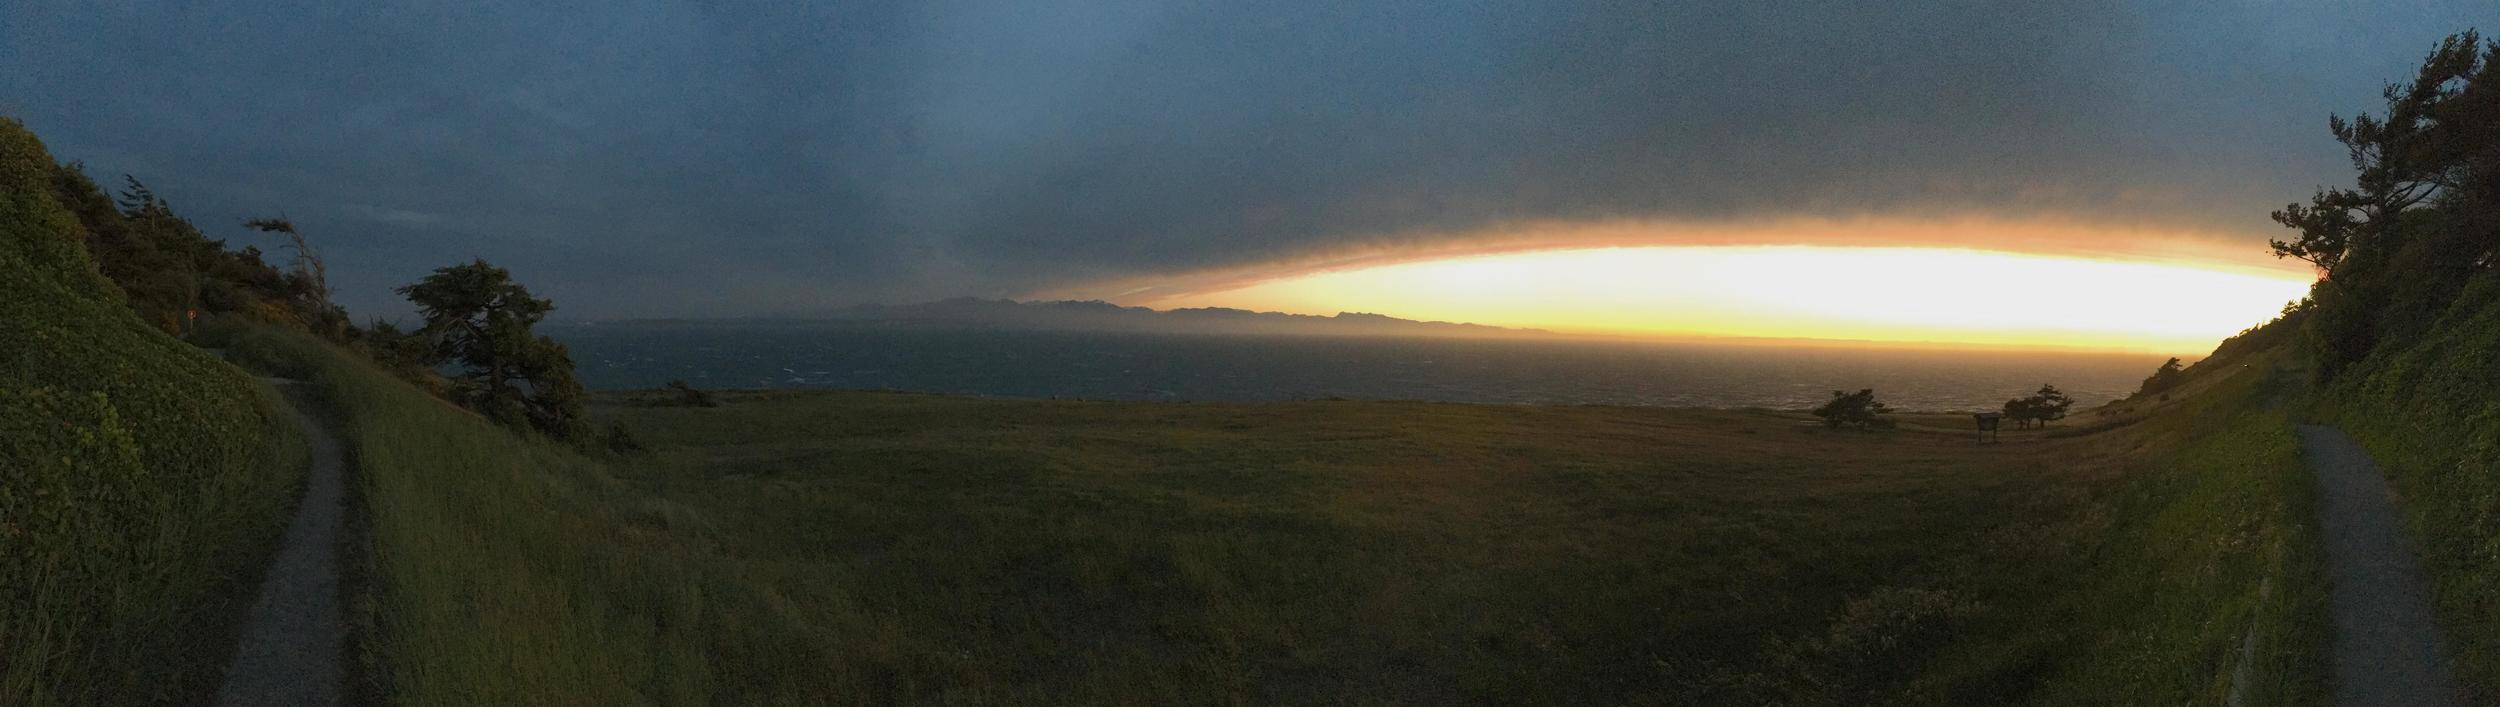 Sunset at Fort Ebey bluff